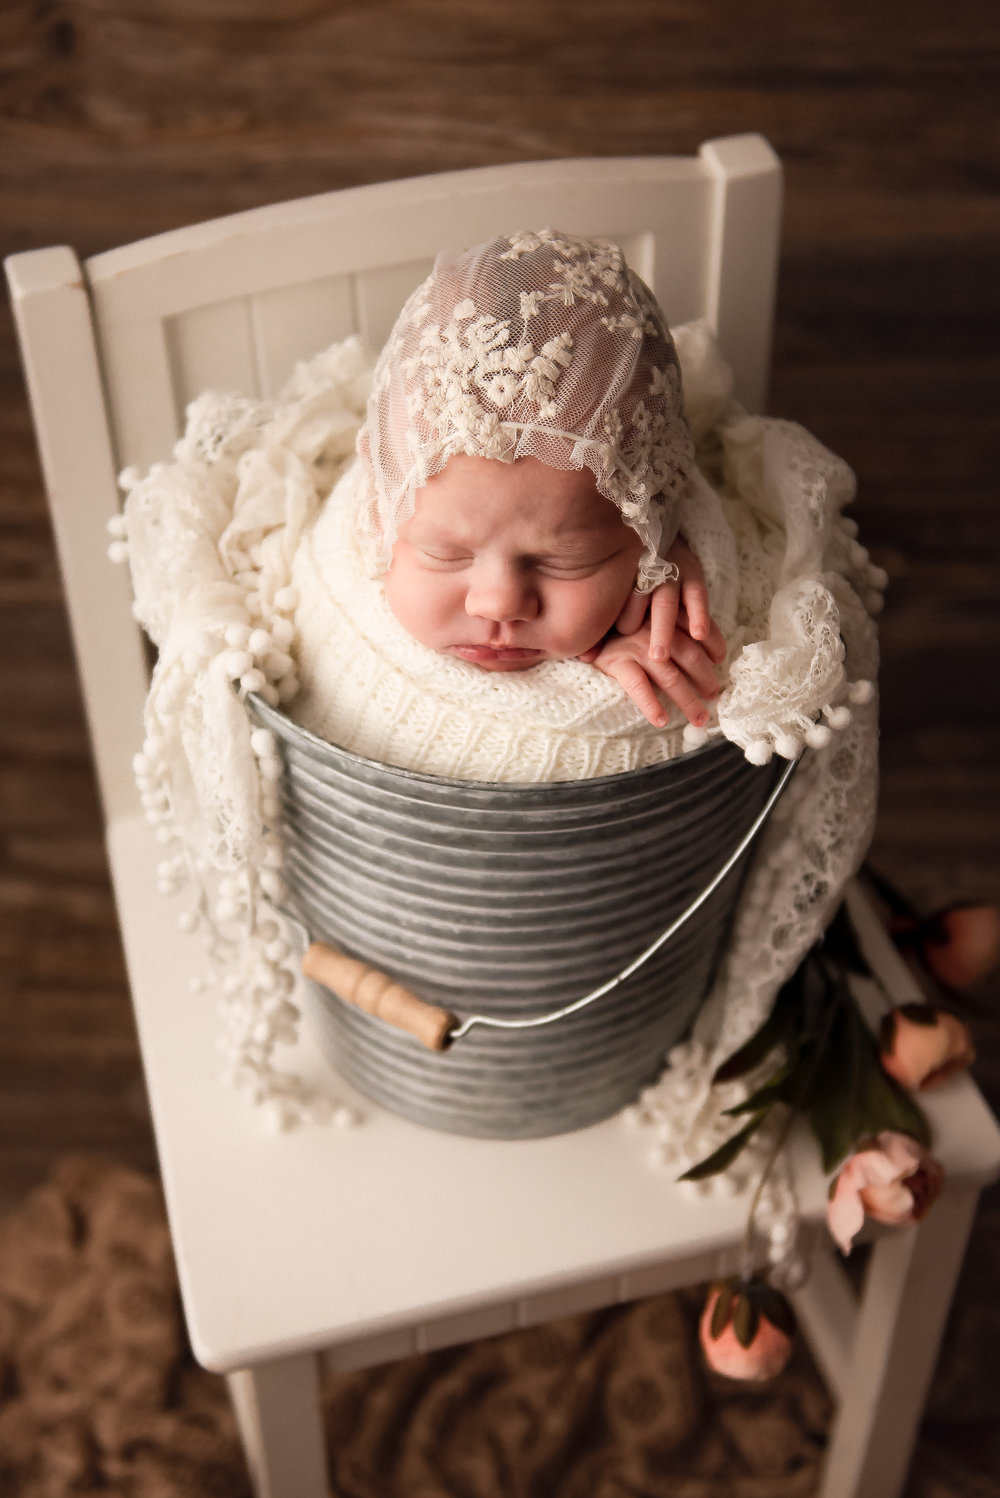 newborn is posed in a bucket for a photography session